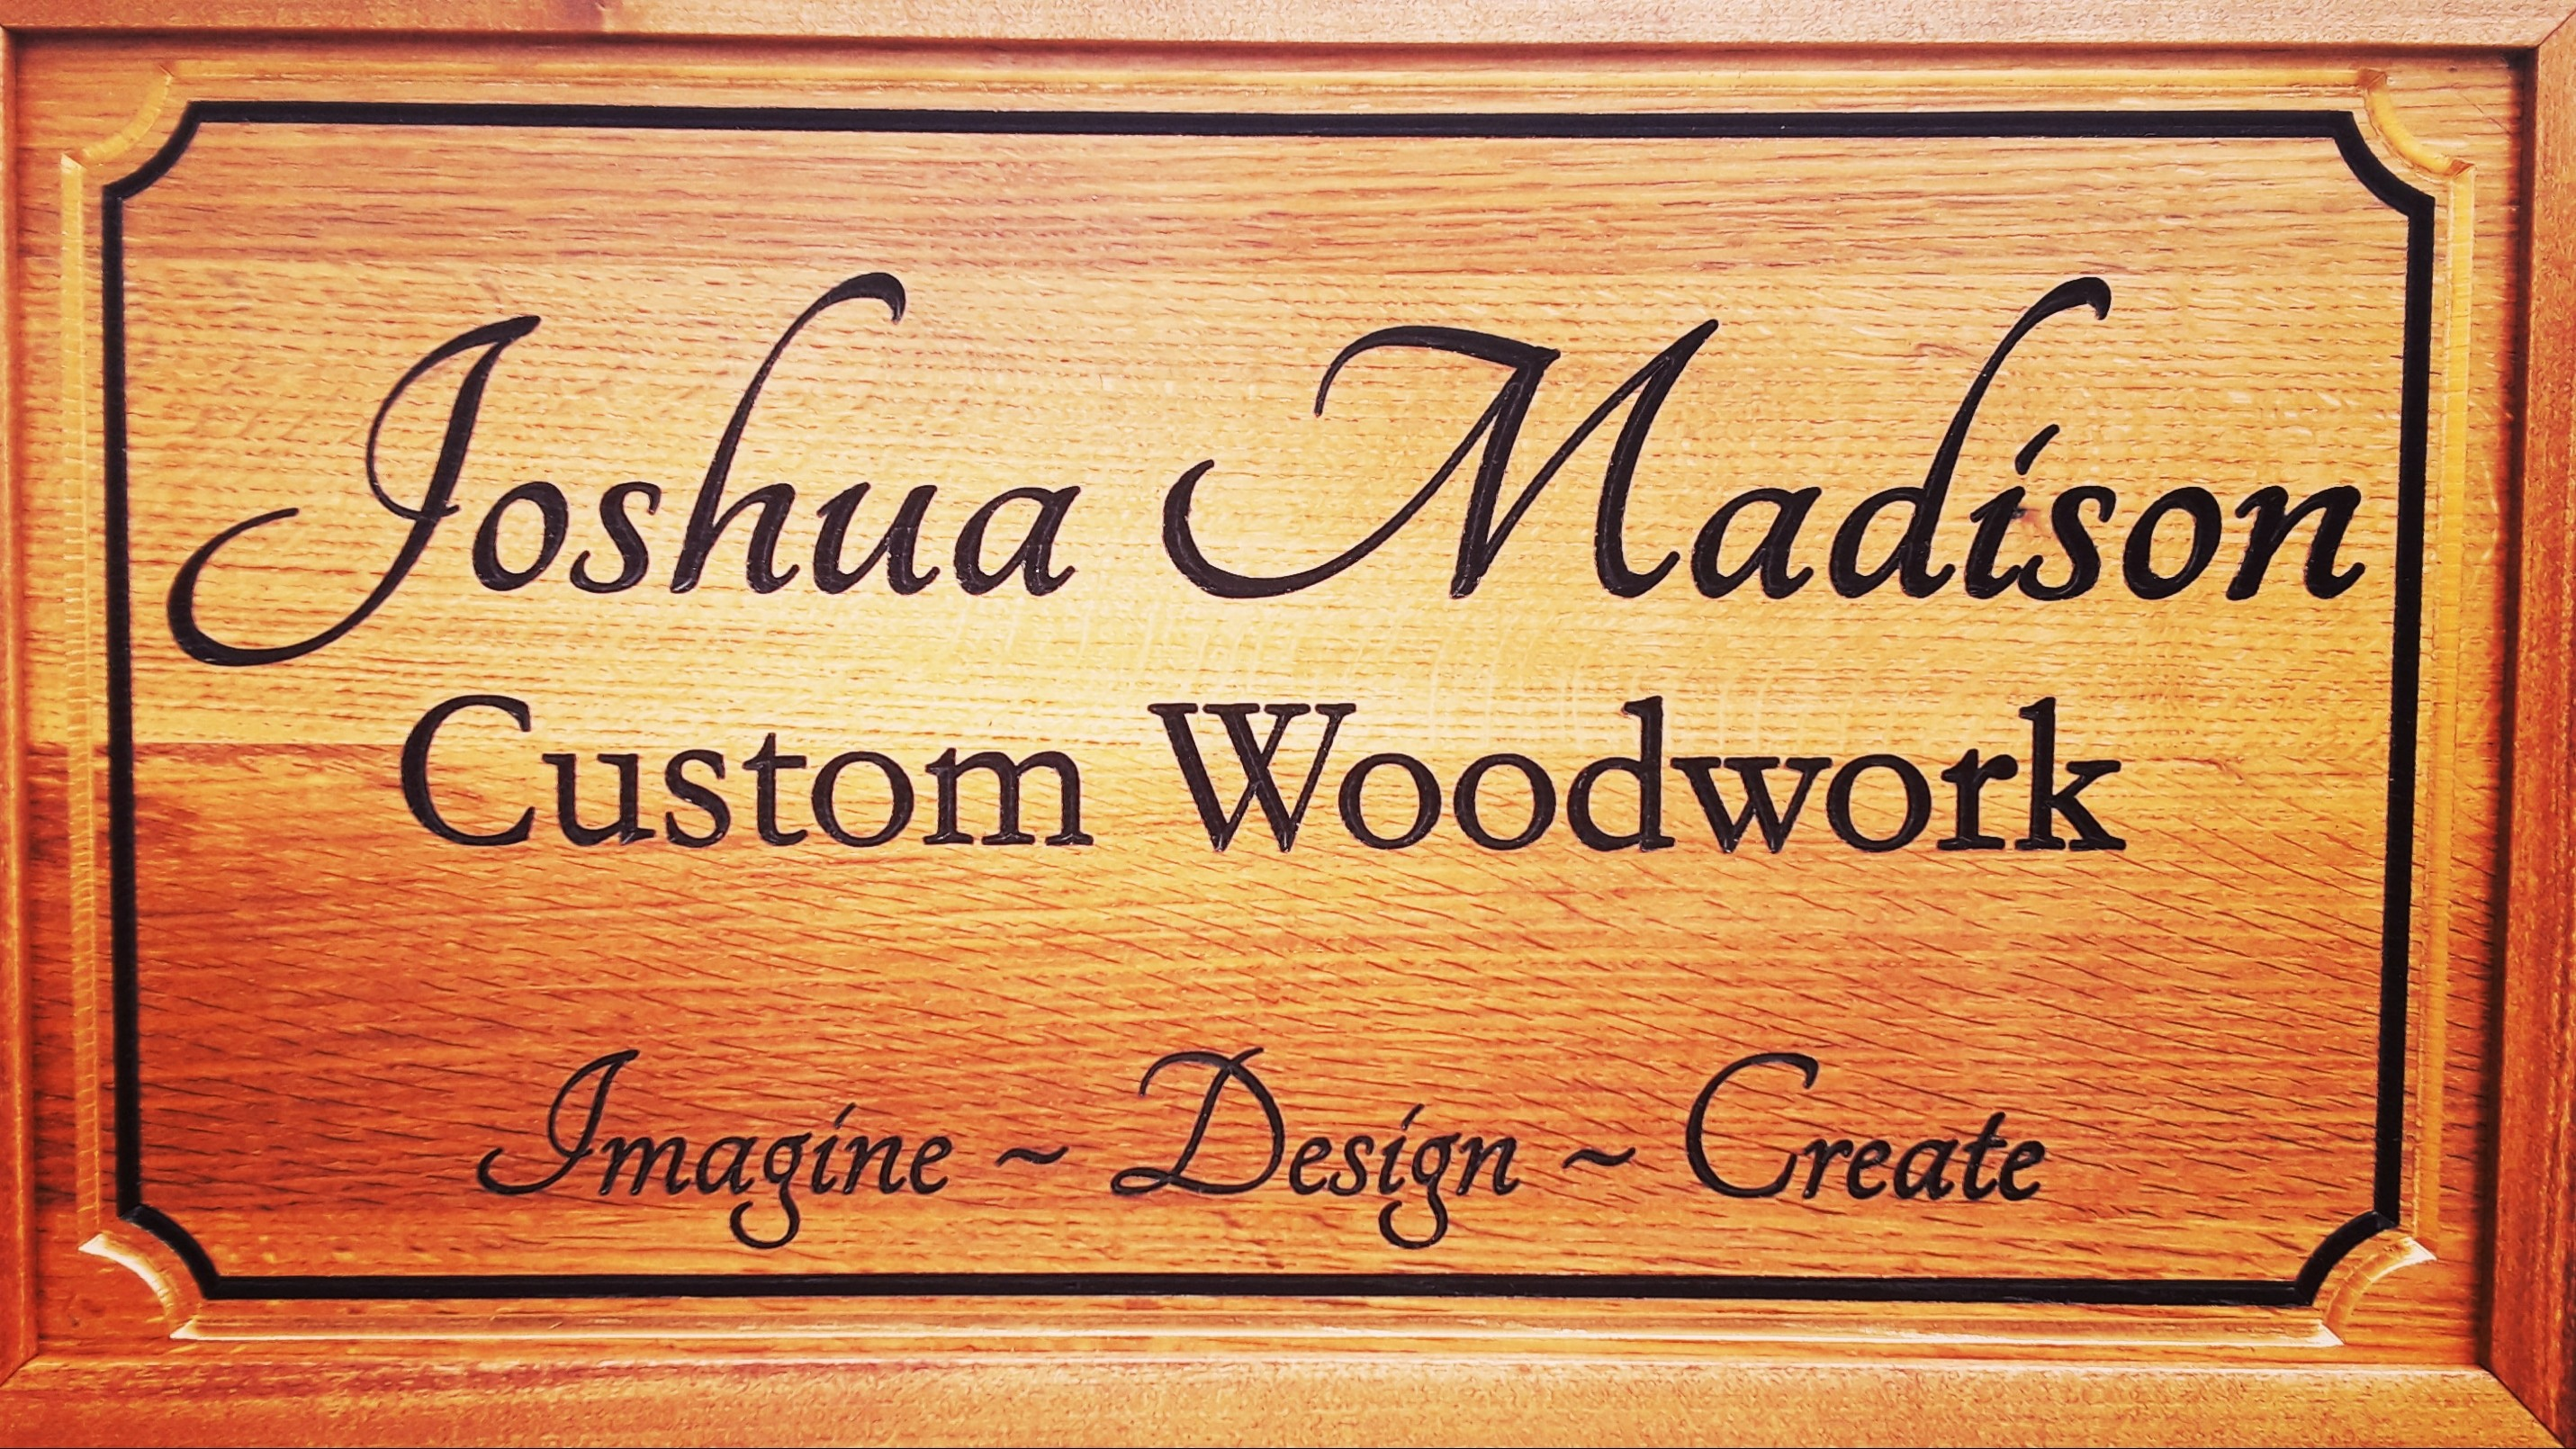 Joshua Madison Custom Woodwork